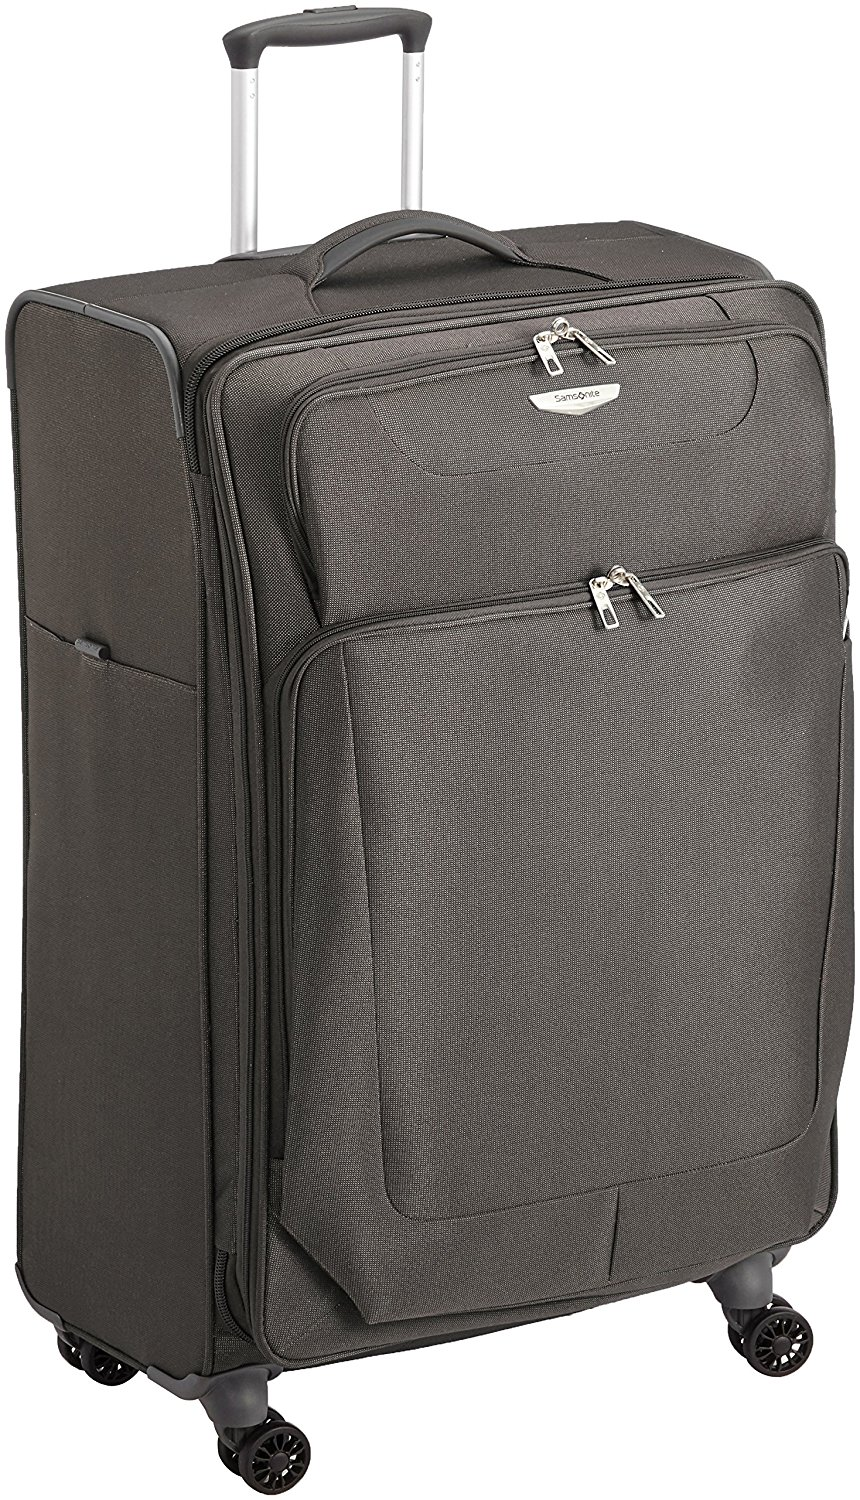 Samsonite_Spark_4-Rollen_Trolley_79